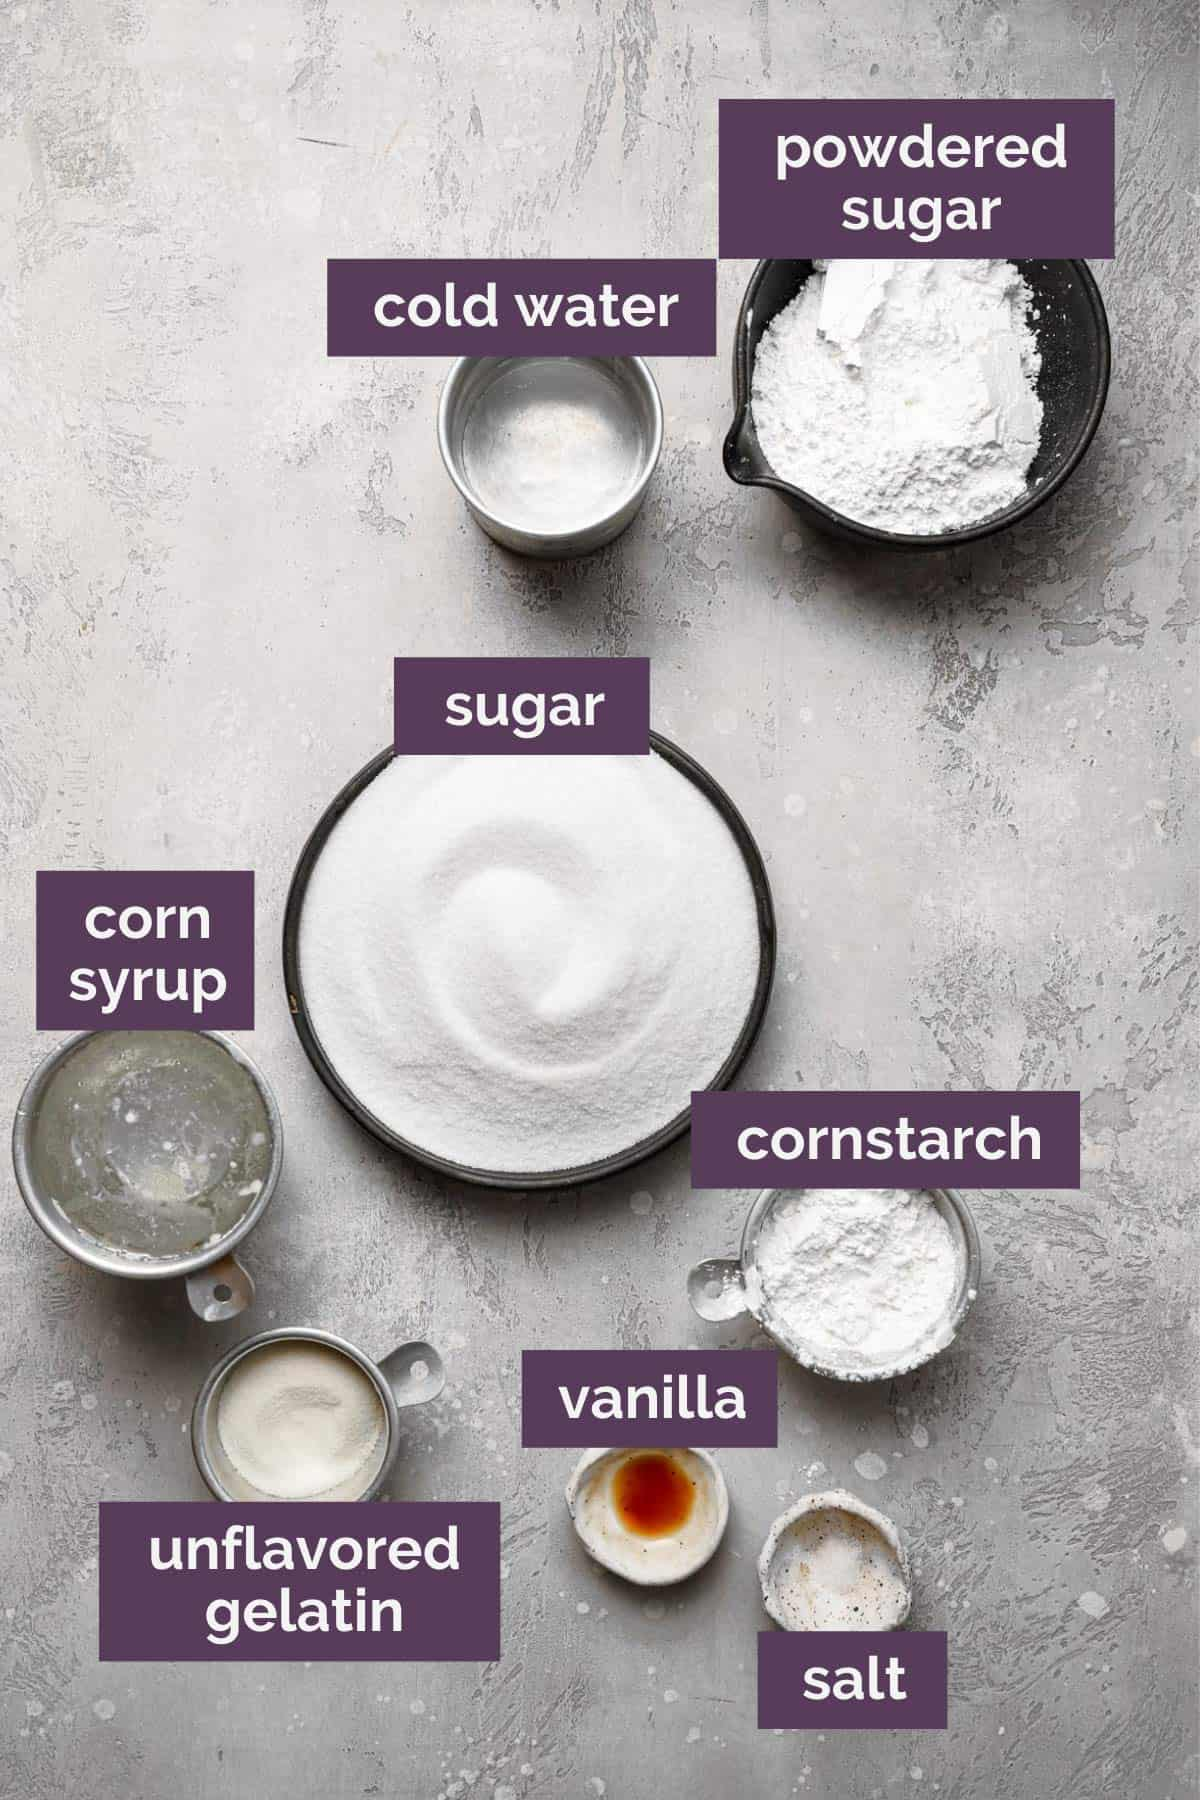 Ingredients for marshmallows on a grey counter with purple labels over the ingredients.